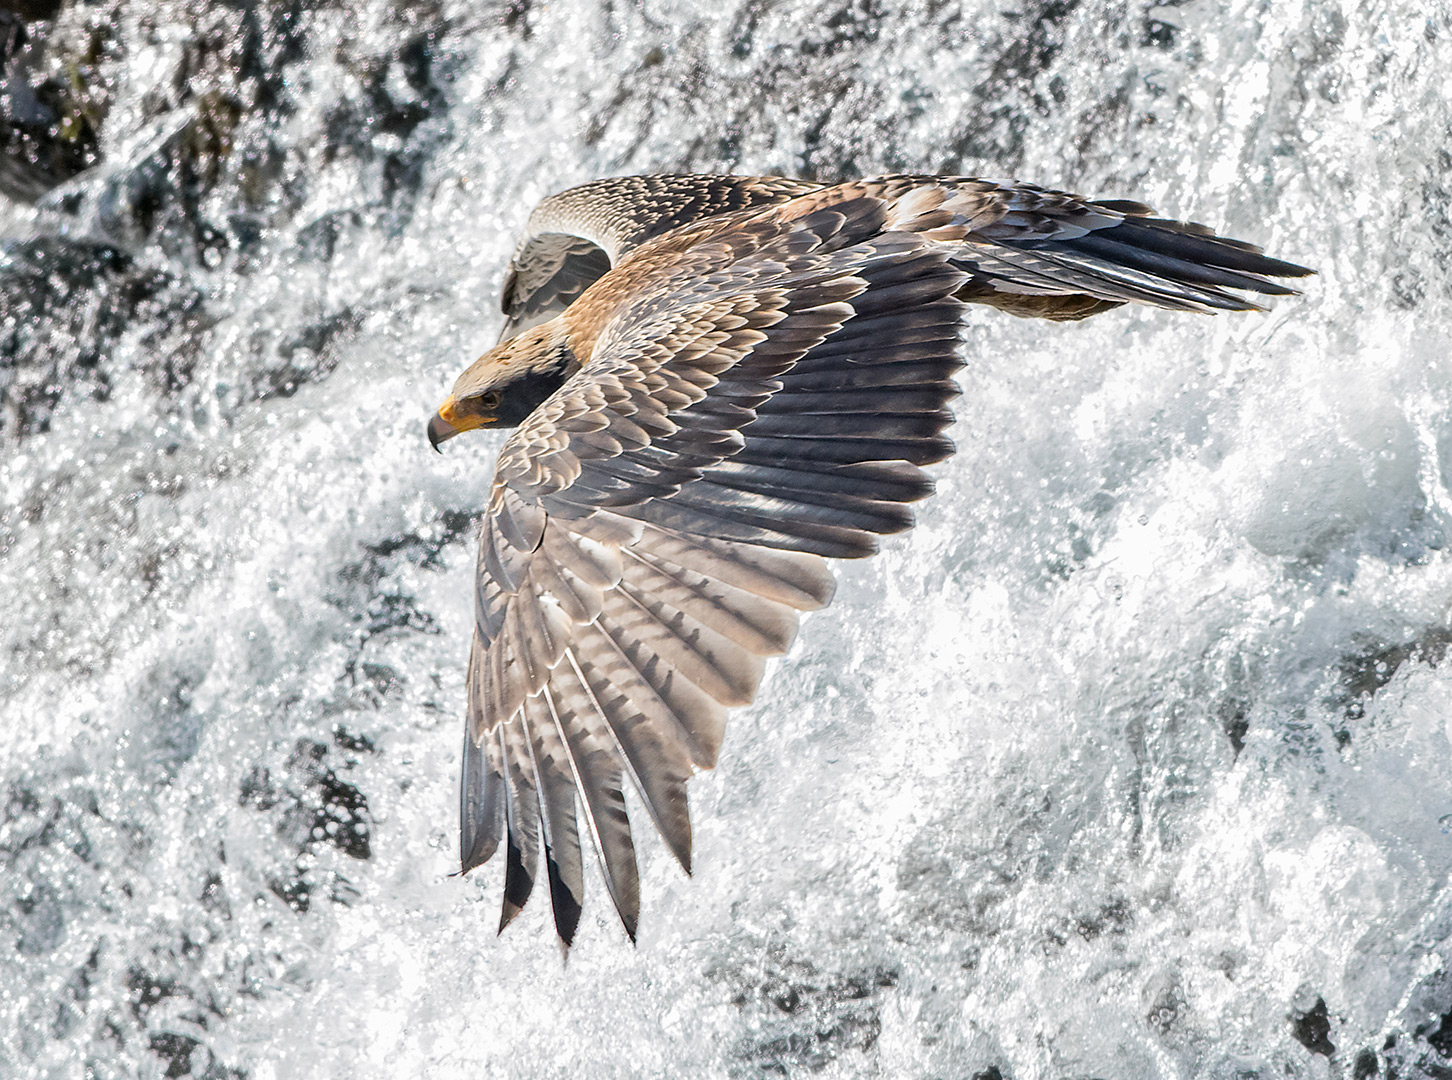 A juvenile black eagle takes off from a waterfall in the Walter Sisulu National Botanical Garden, South Africa ©Ernest Porter